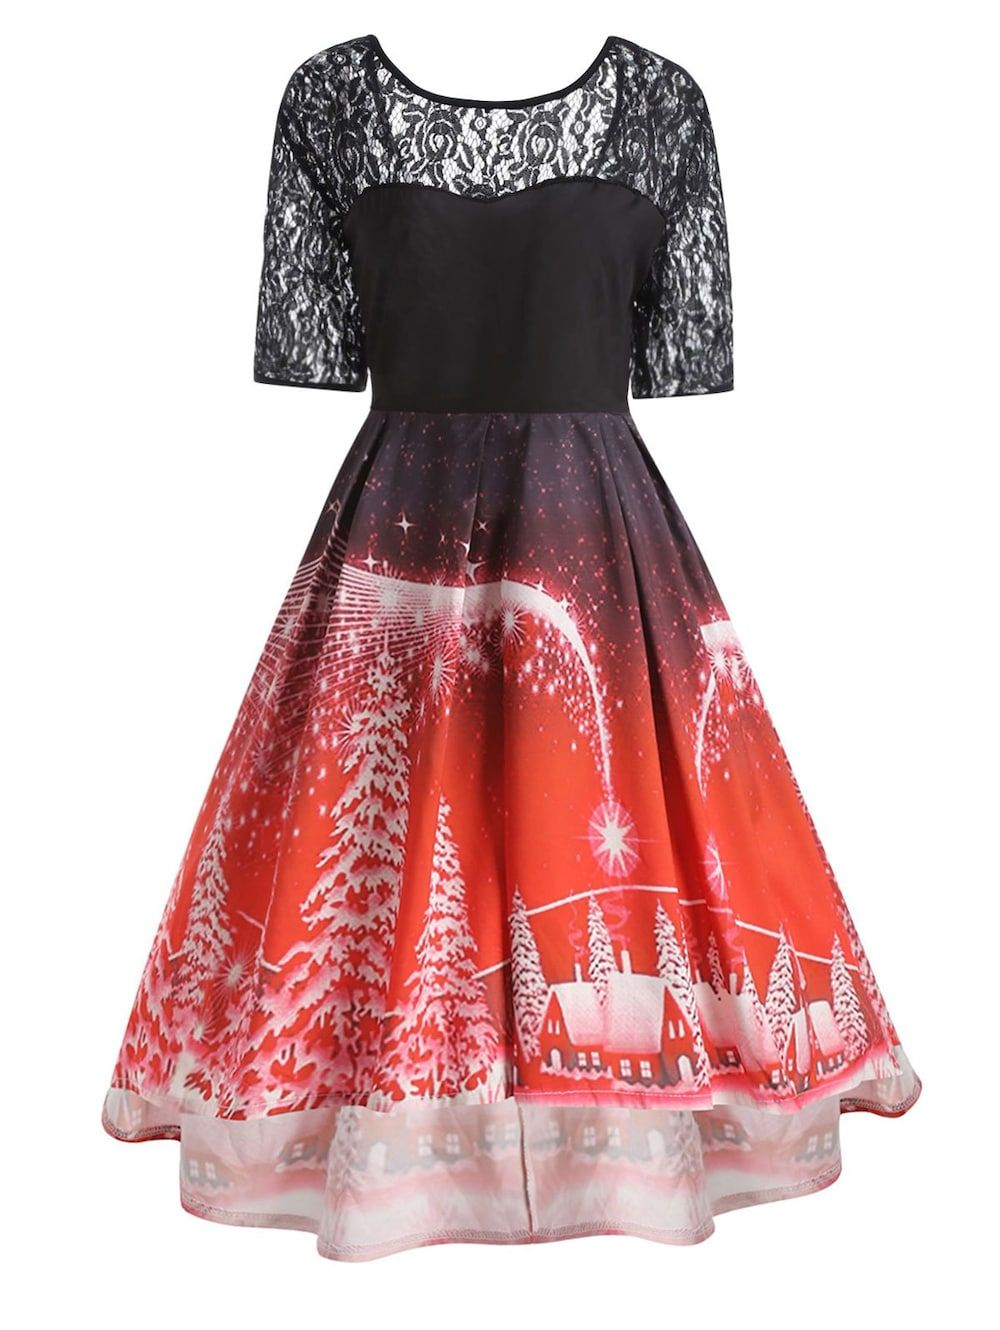 5aed9f27262 Plus Size Christmas Party Lace Panel Vintage Dress - RED XL